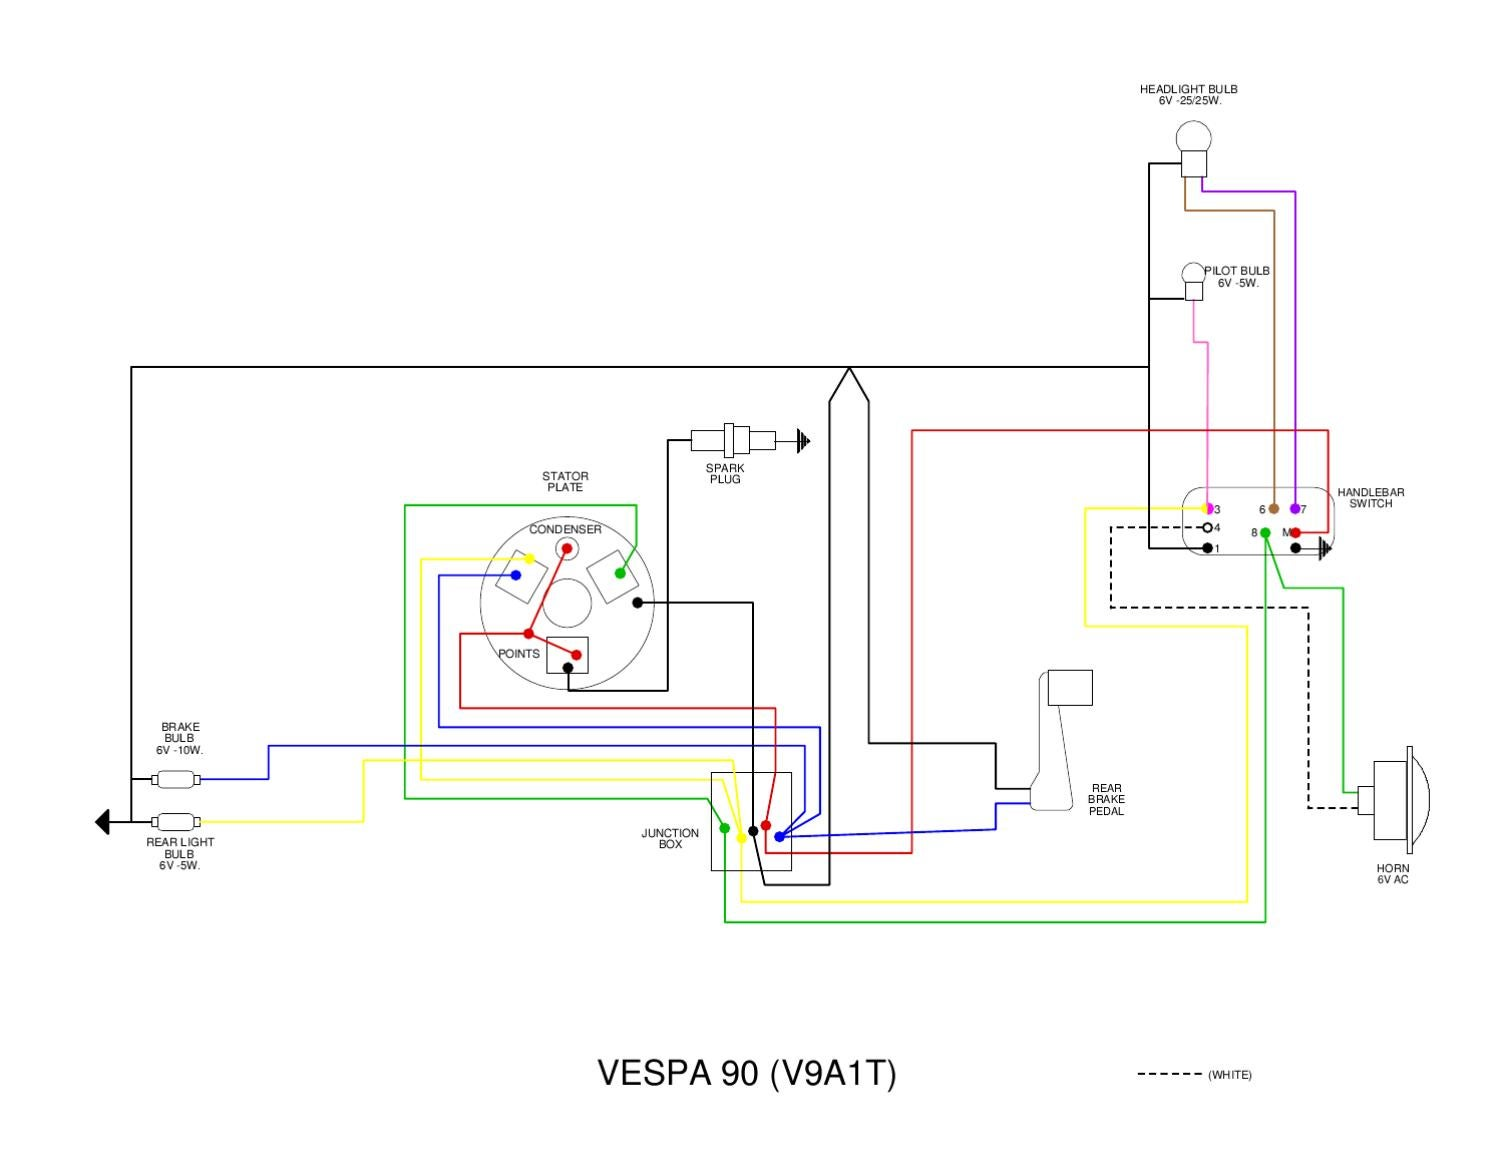 Vespa v wiring diagram by et px issuu